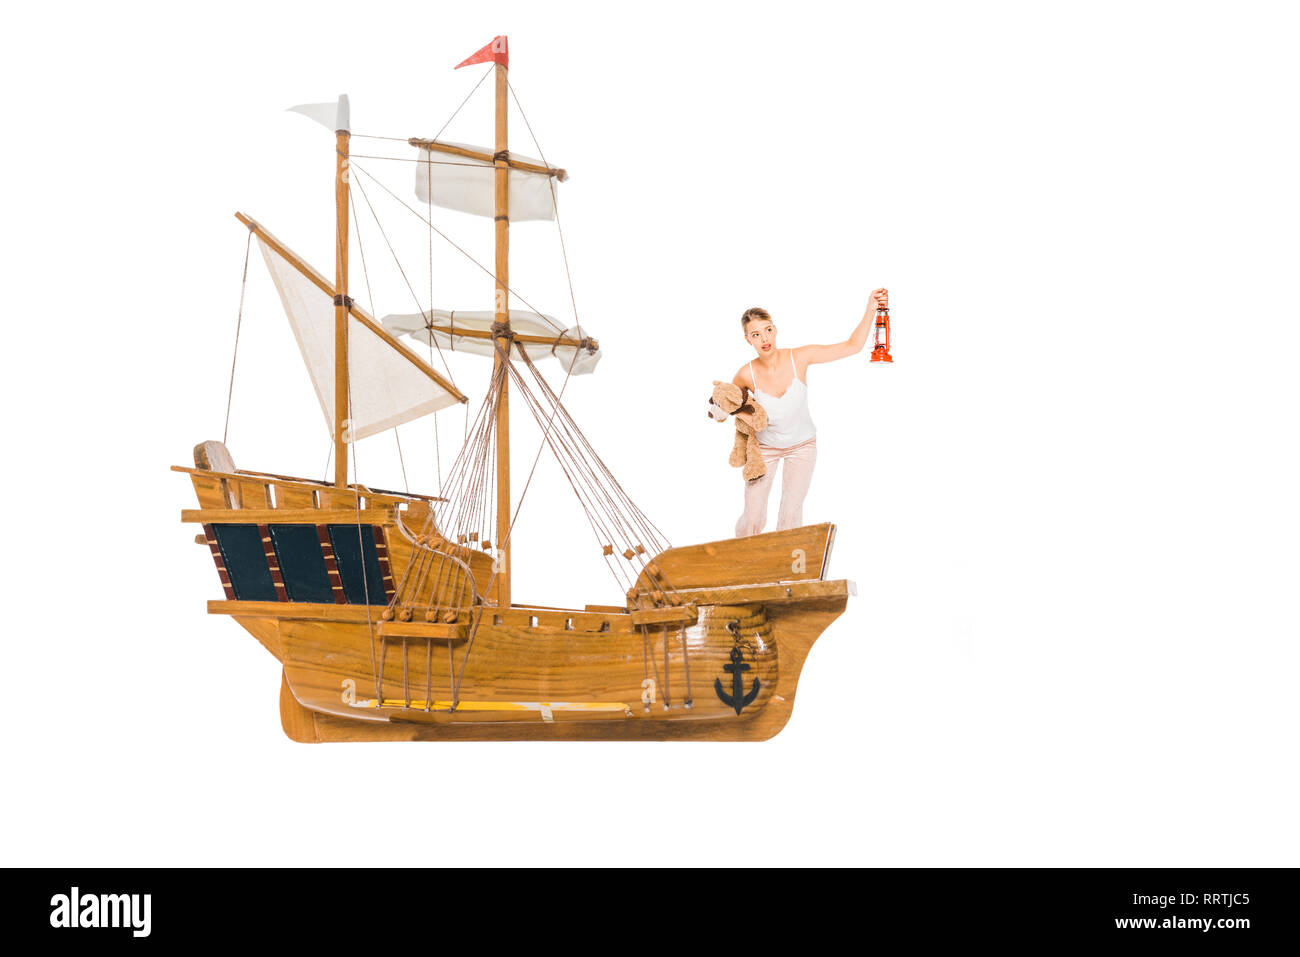 girl in pyjamas holding lantern, teddy bear and standing on floating ship model with copy space - Stock Image